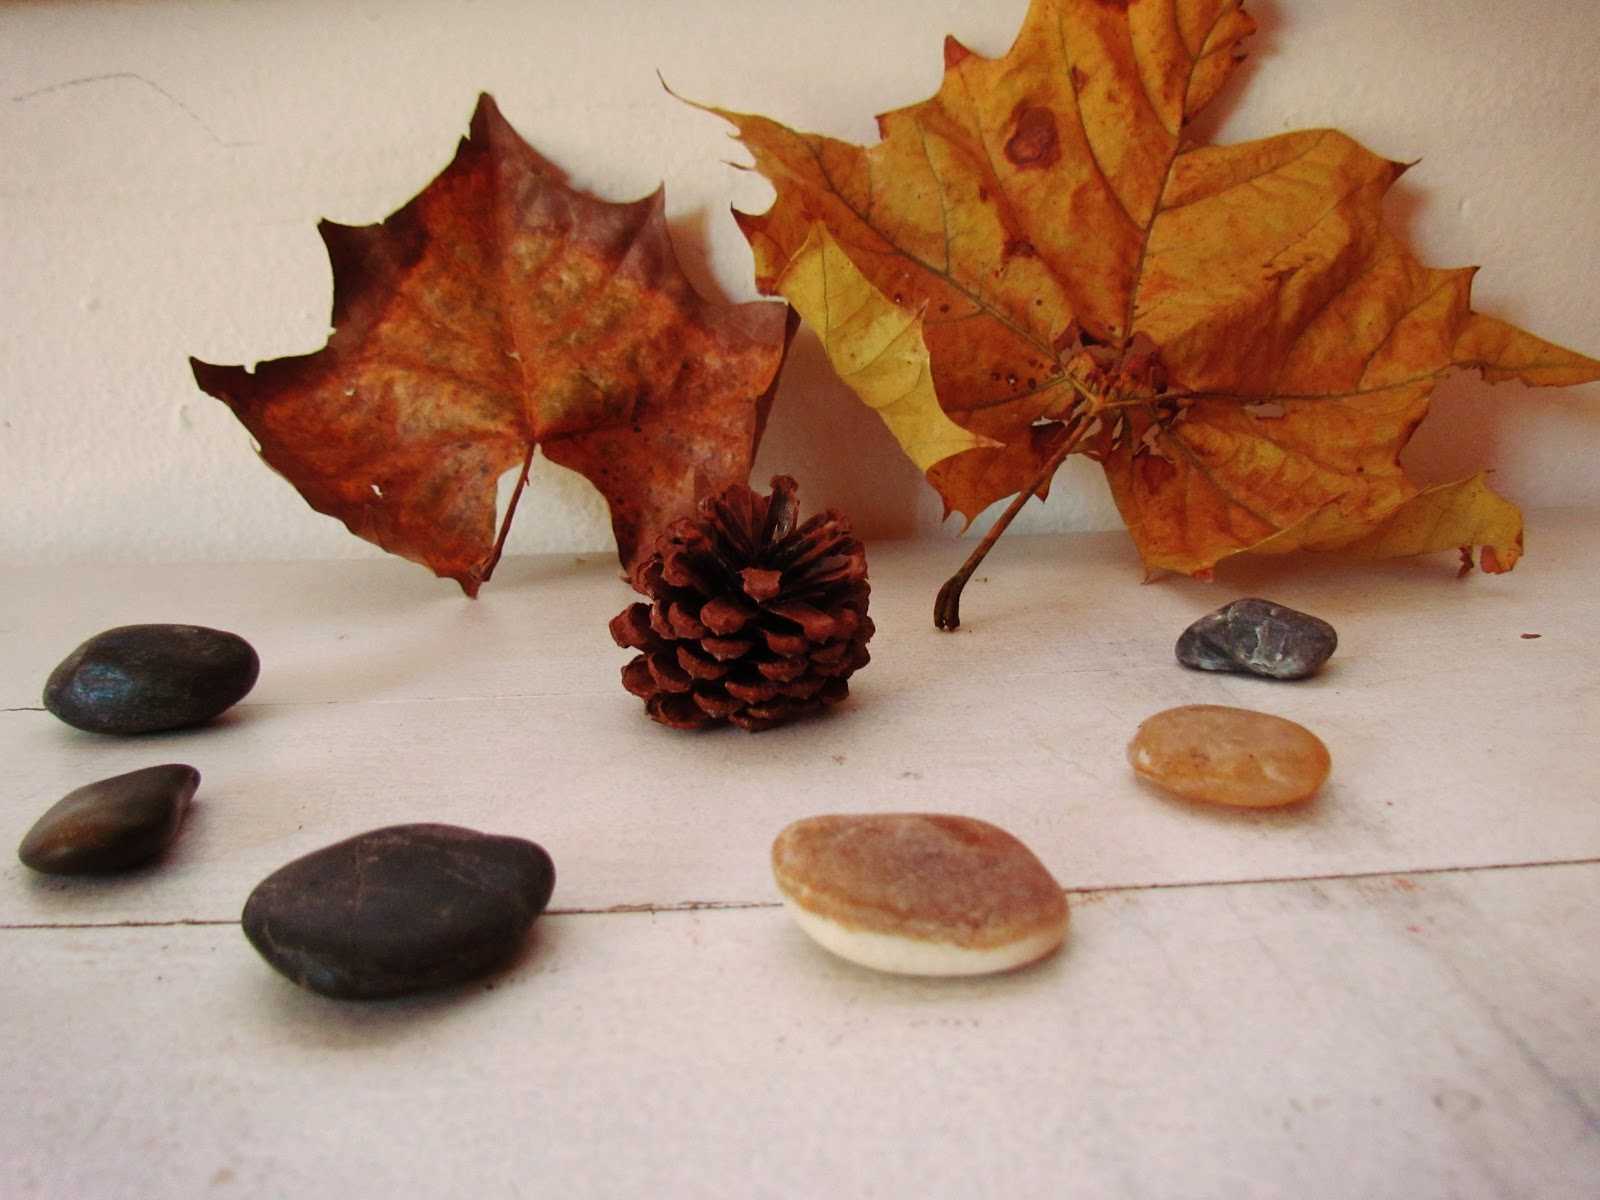 Fall Leaves, Pine Cones, and Smooth River Rocks Found in Nature + Table Display